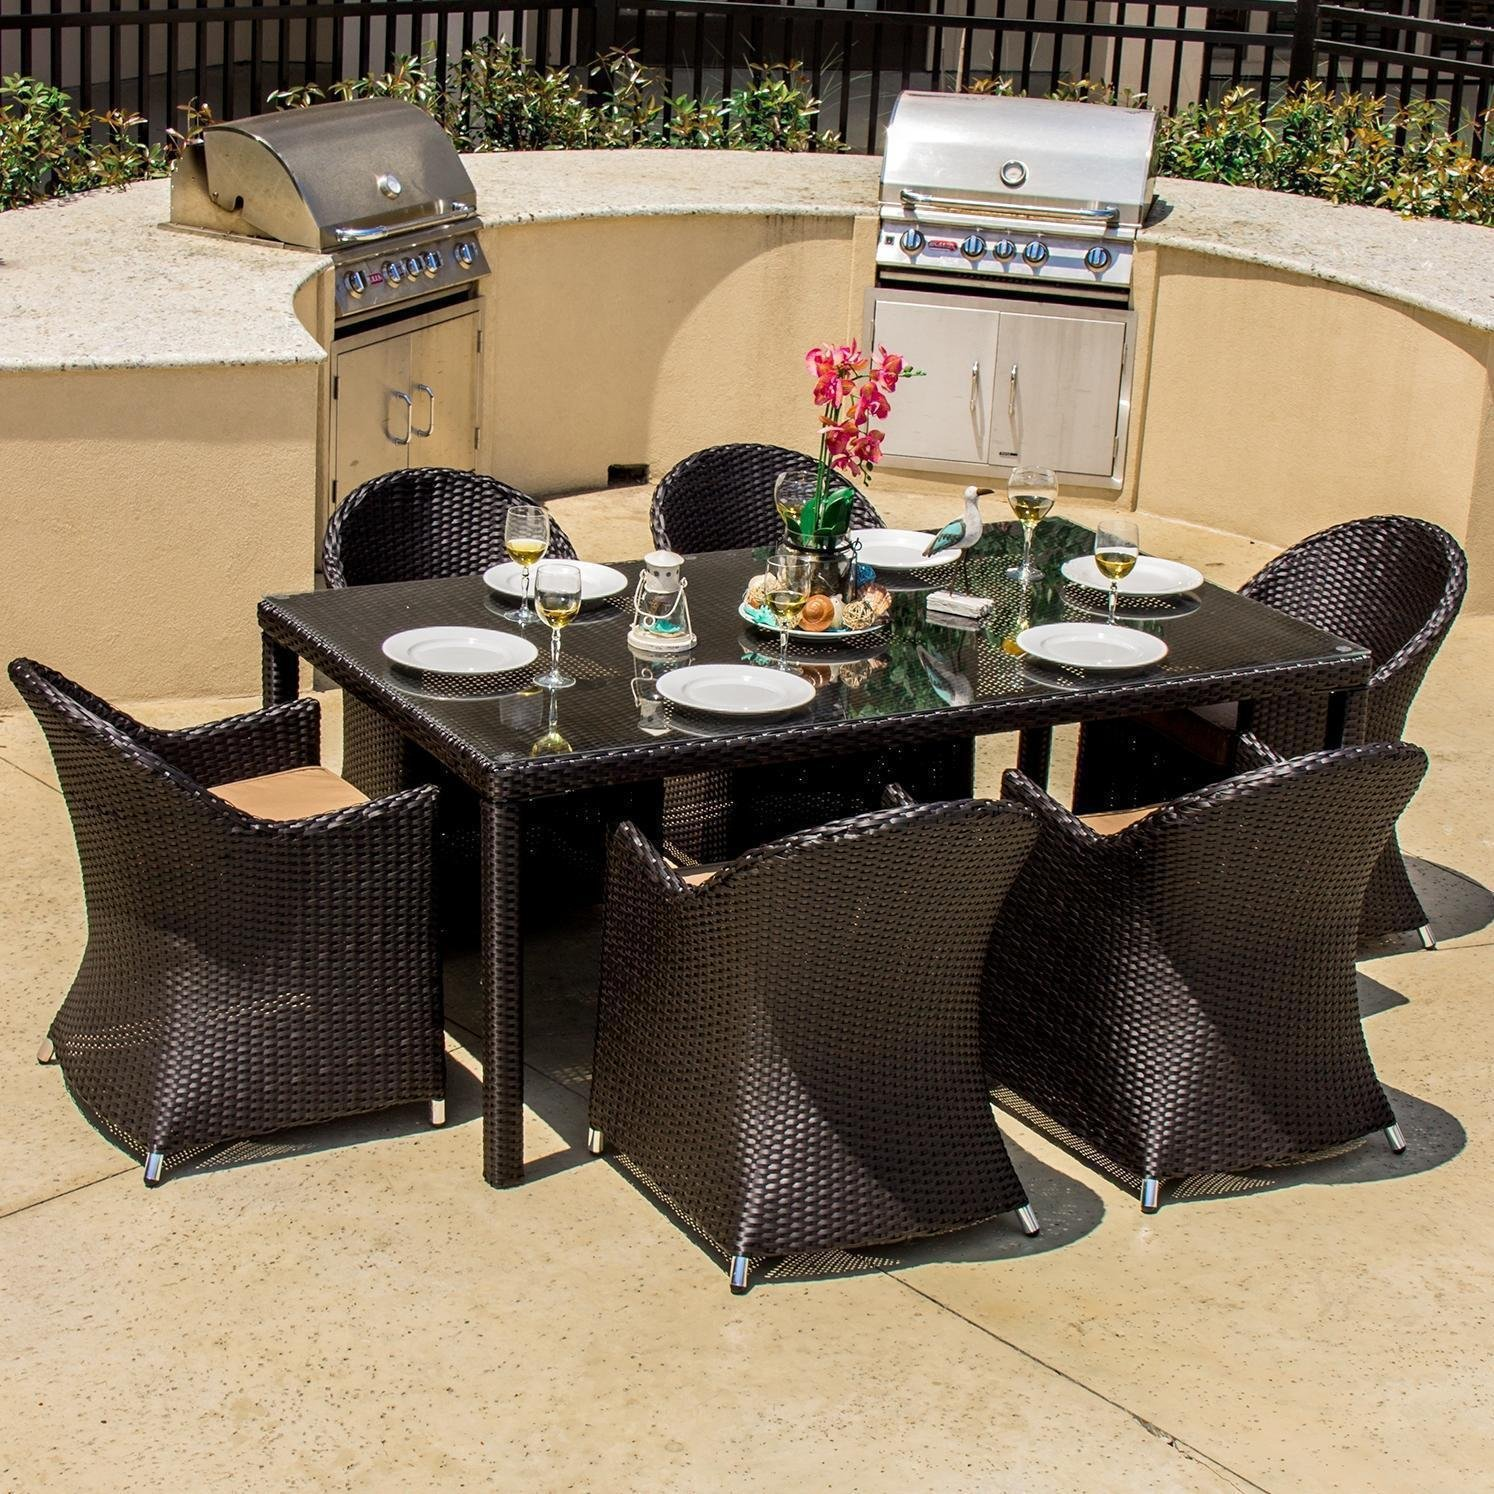 wicker patio furniture. Amazon.com: Lakeview Outdoor Designs Providence 6 Person Resin Wicker Patio Dining Set, Espresso: Garden \u0026 Furniture T